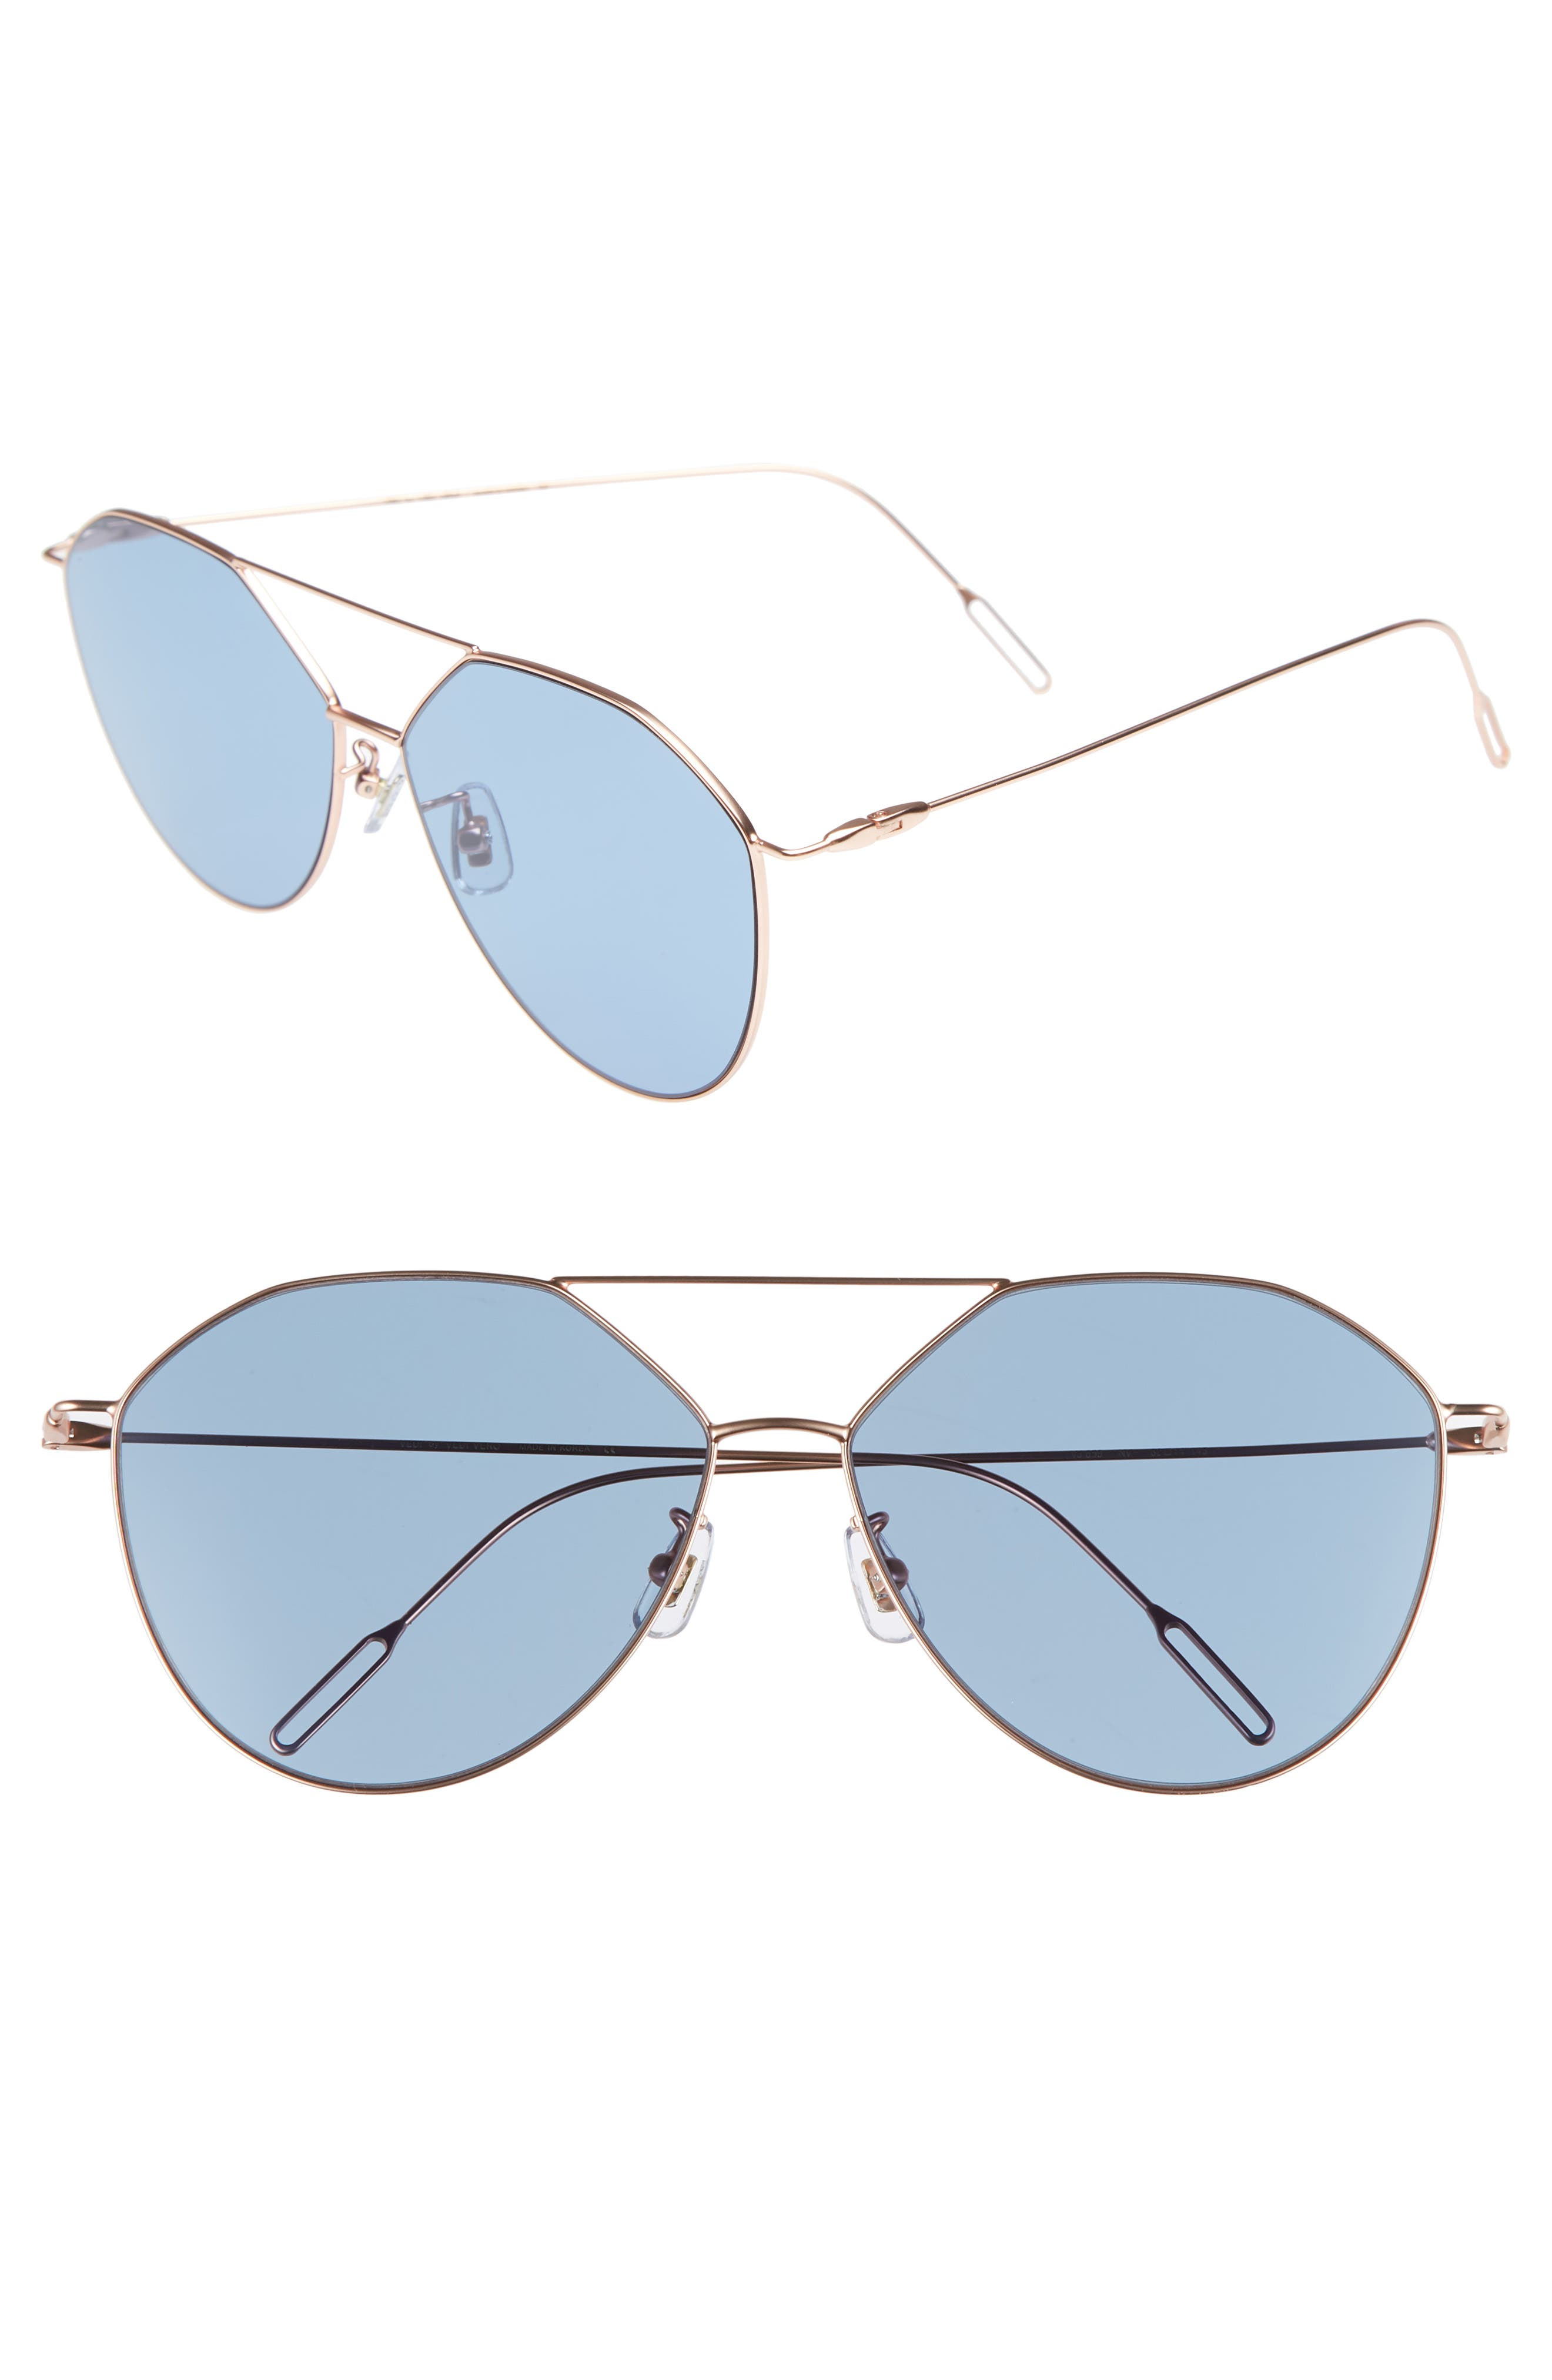 VEDI VERO 62Mm Metal Oversize Aviator Sunglasses - Rose Gold/Navy